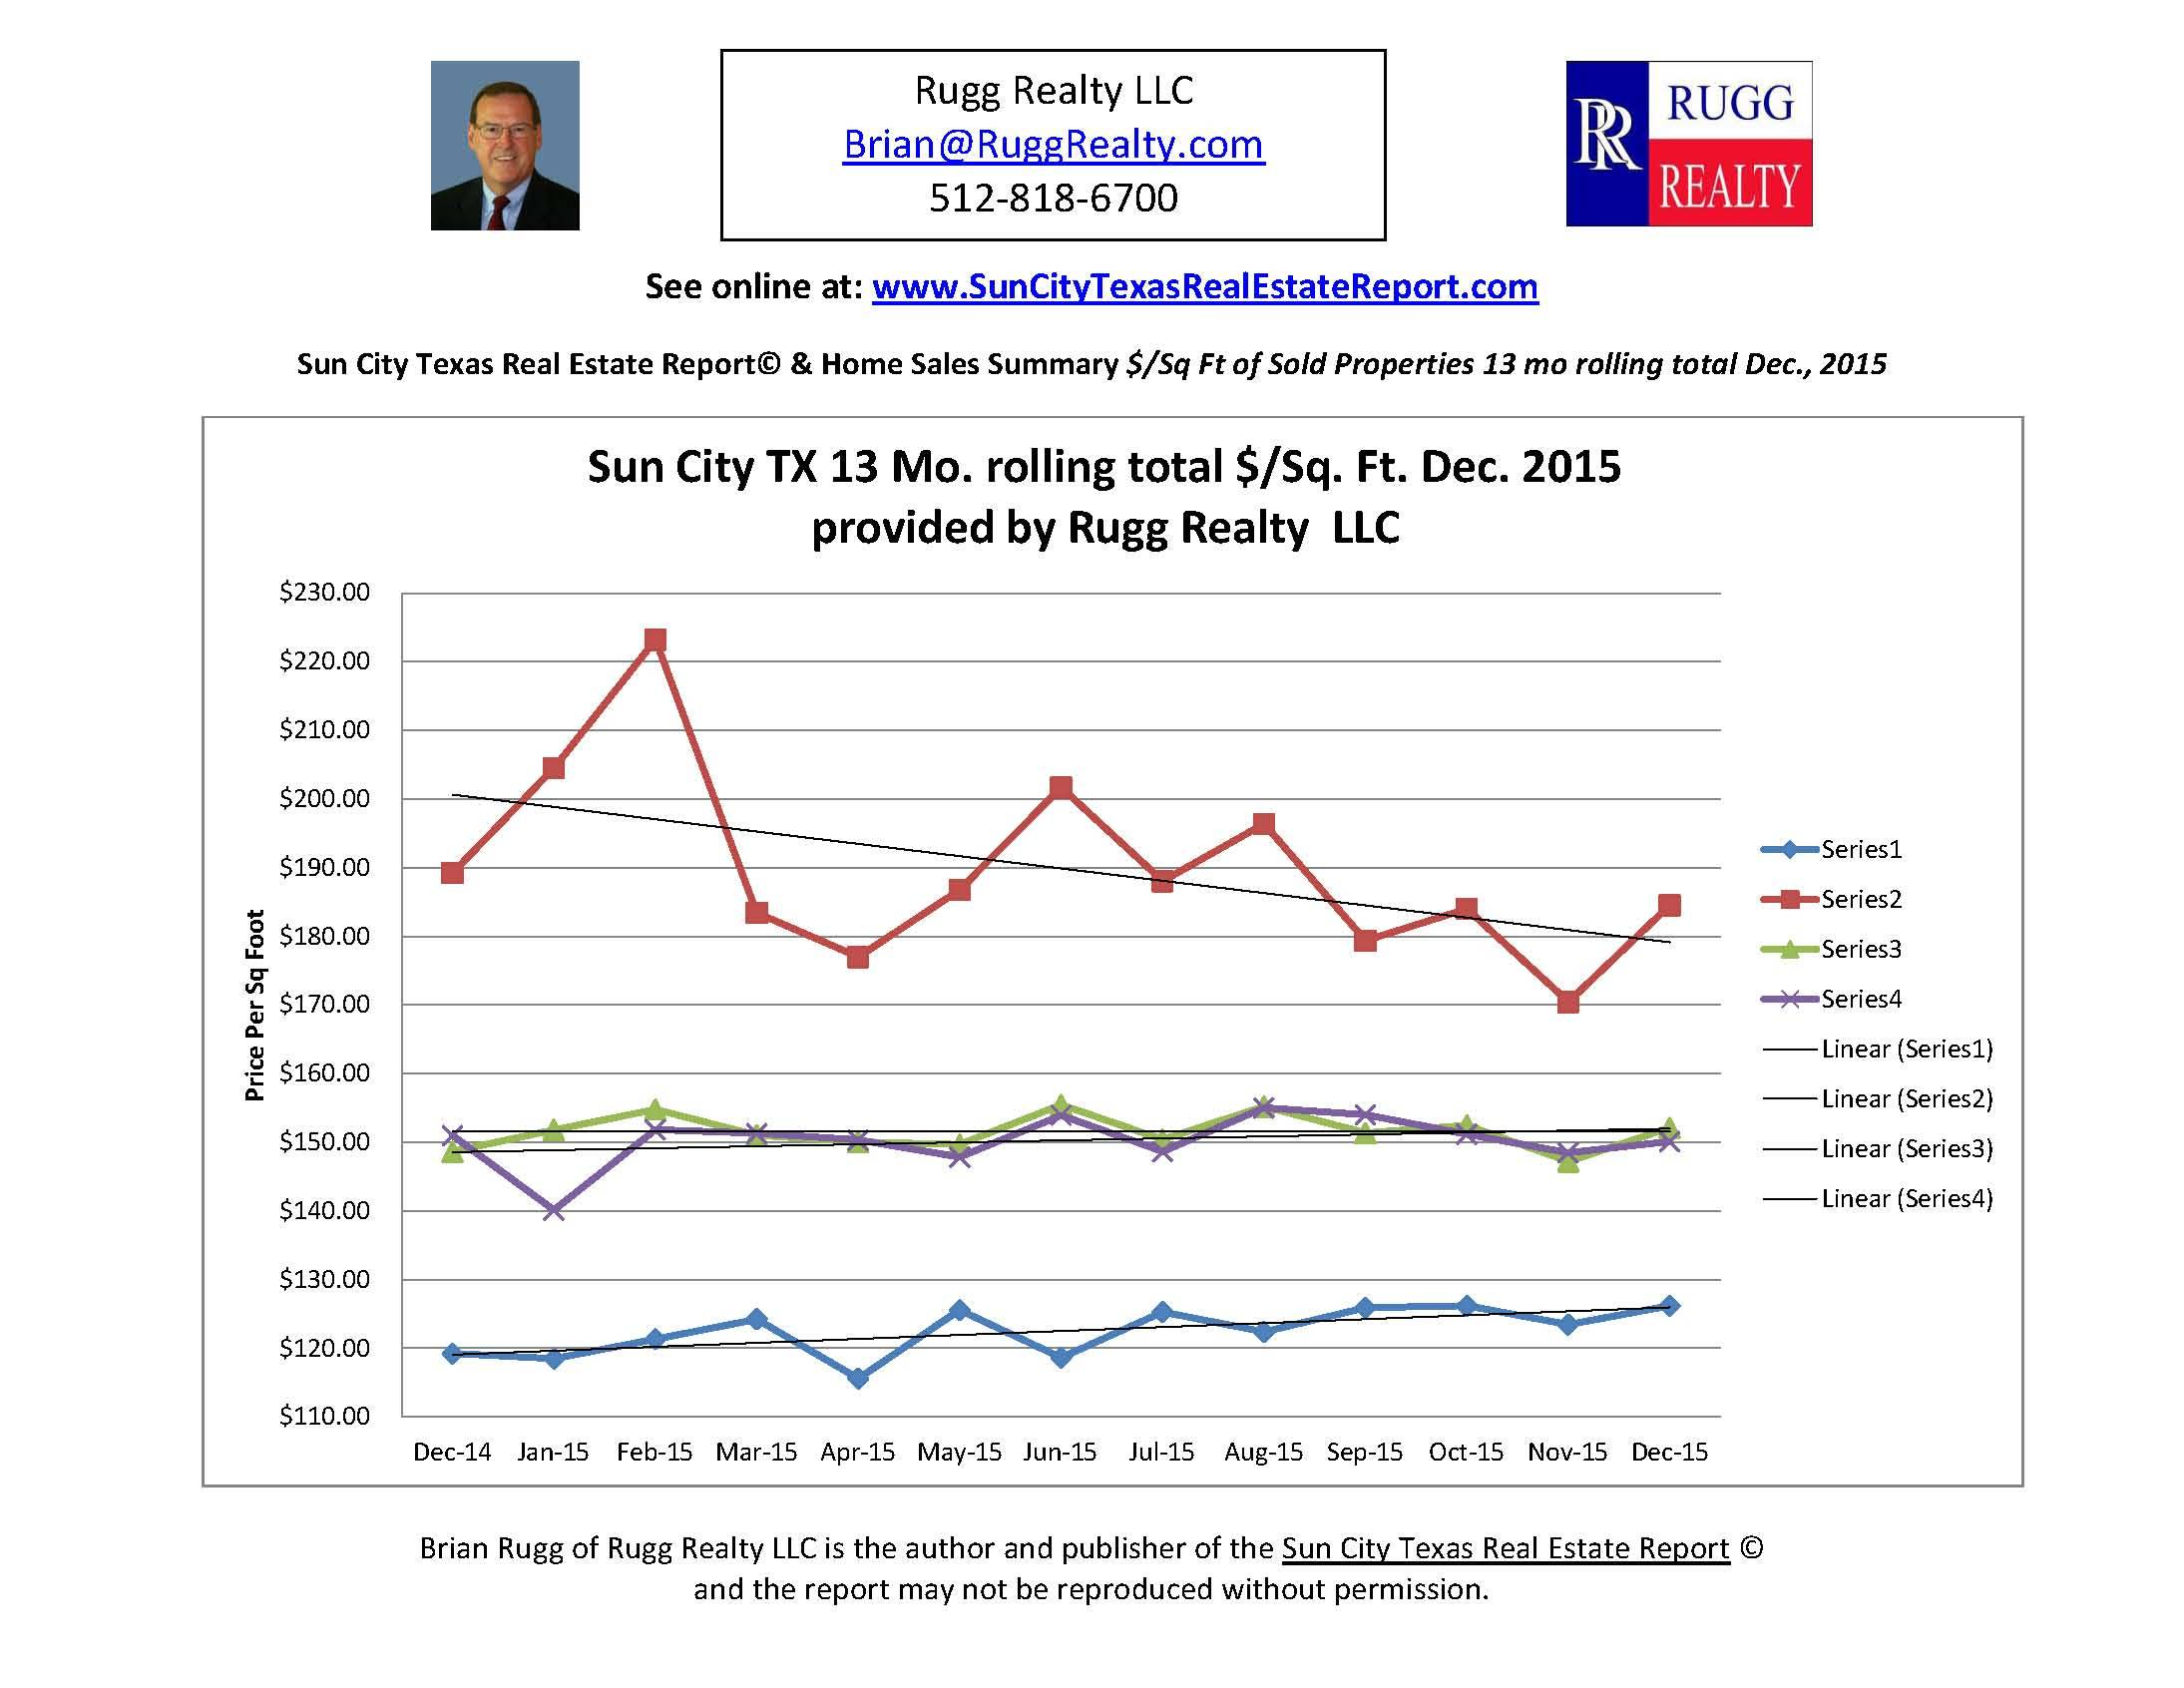 Dec 2015 $/Sq ft Sun City Texas 13 Mo Trailing Total by Rugg Realty